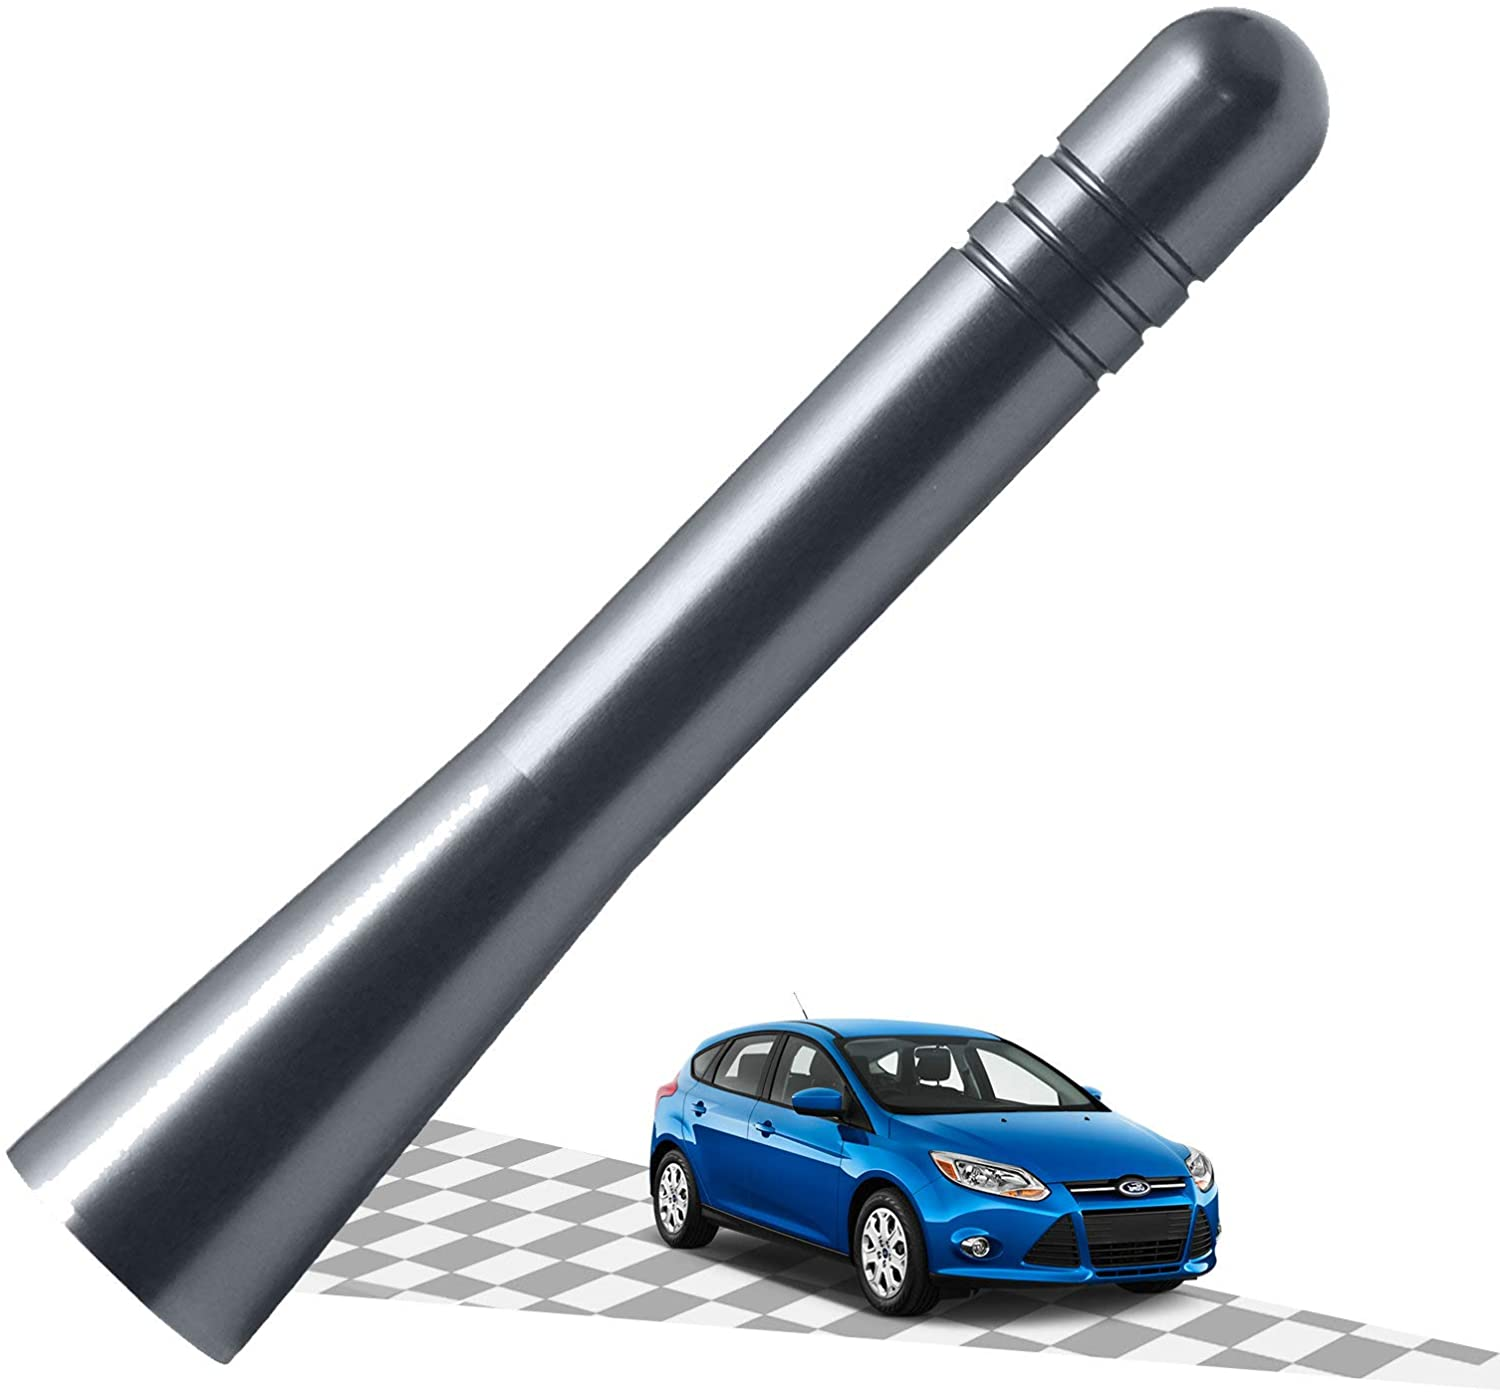 Elitezip Antenna Compatible with Ford Focus 2008-2018 | Optimized AM/FM Reception with Tough Material | 3.2 Inches - Carbon Black